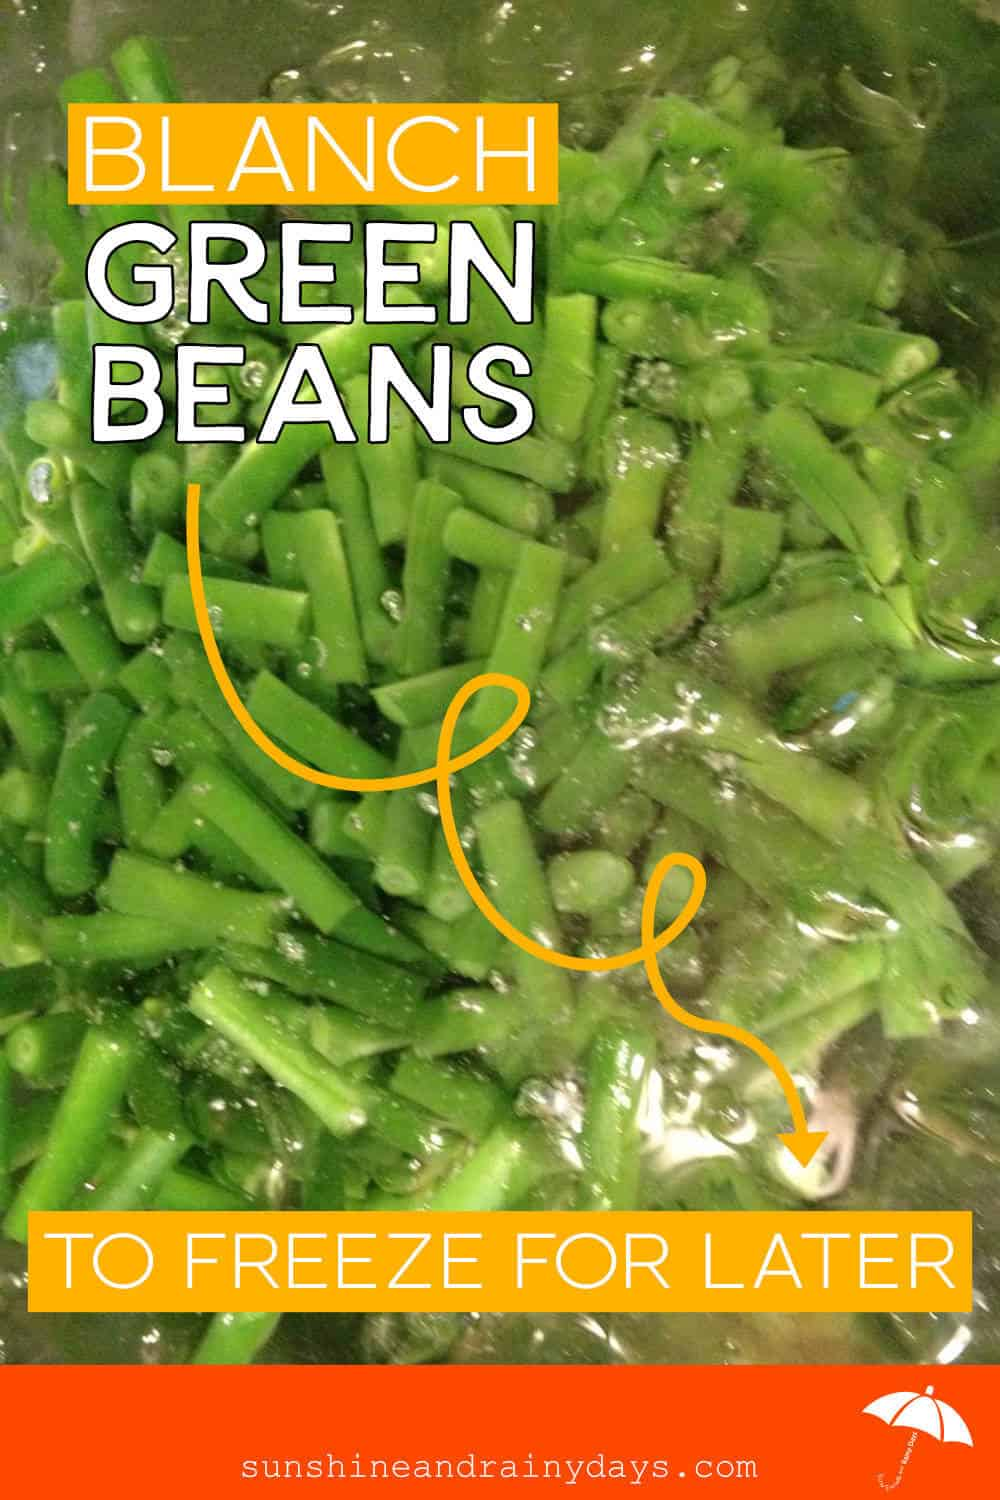 Blanch Green Beans To Freeze For Later